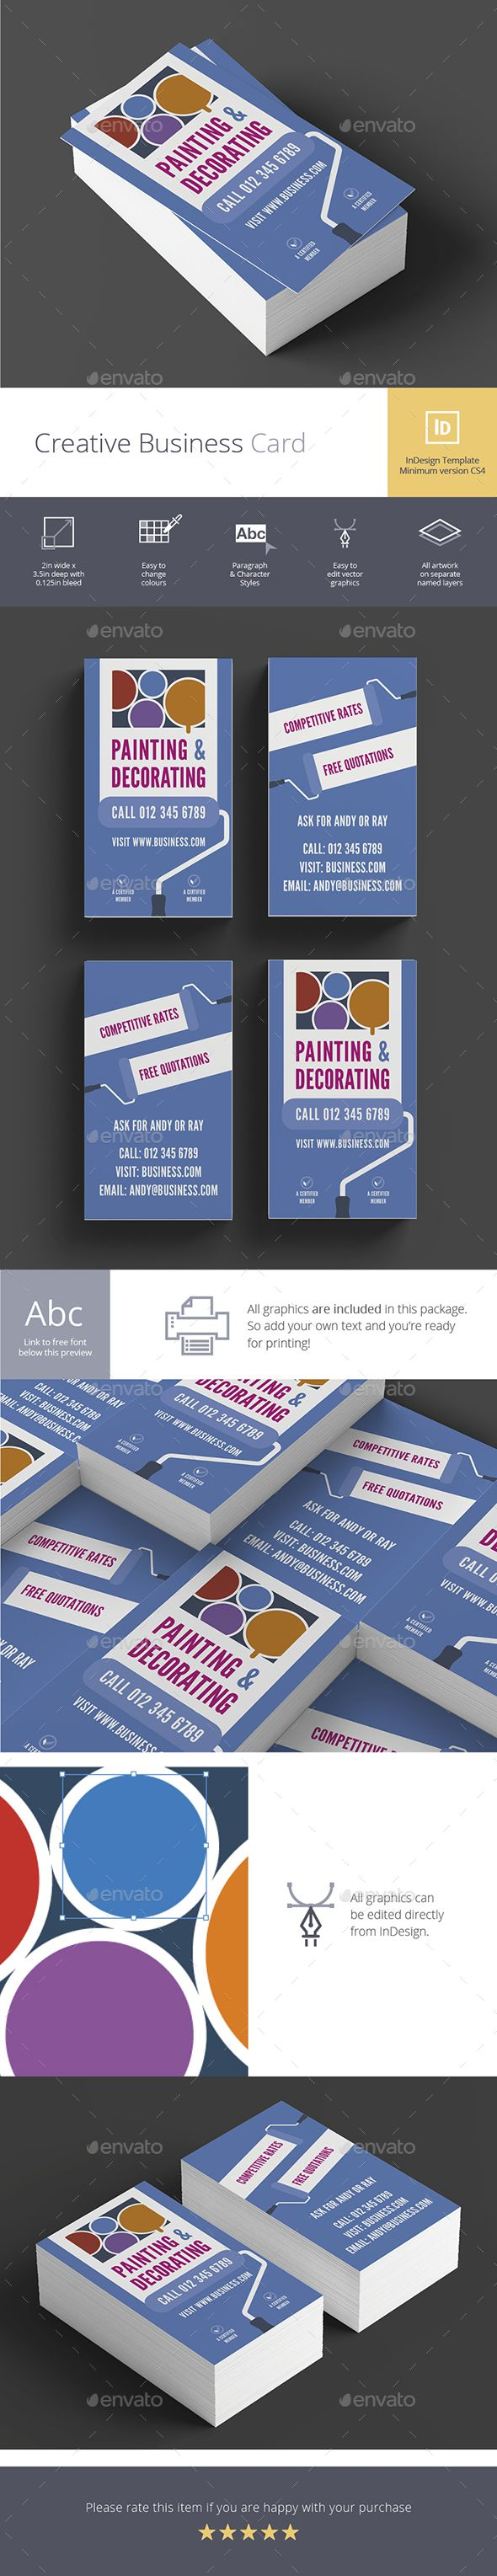 Creative business card no10 pinterest business cards card creative business card design idea template no10 creative business card template indesign indd download here reheart Gallery